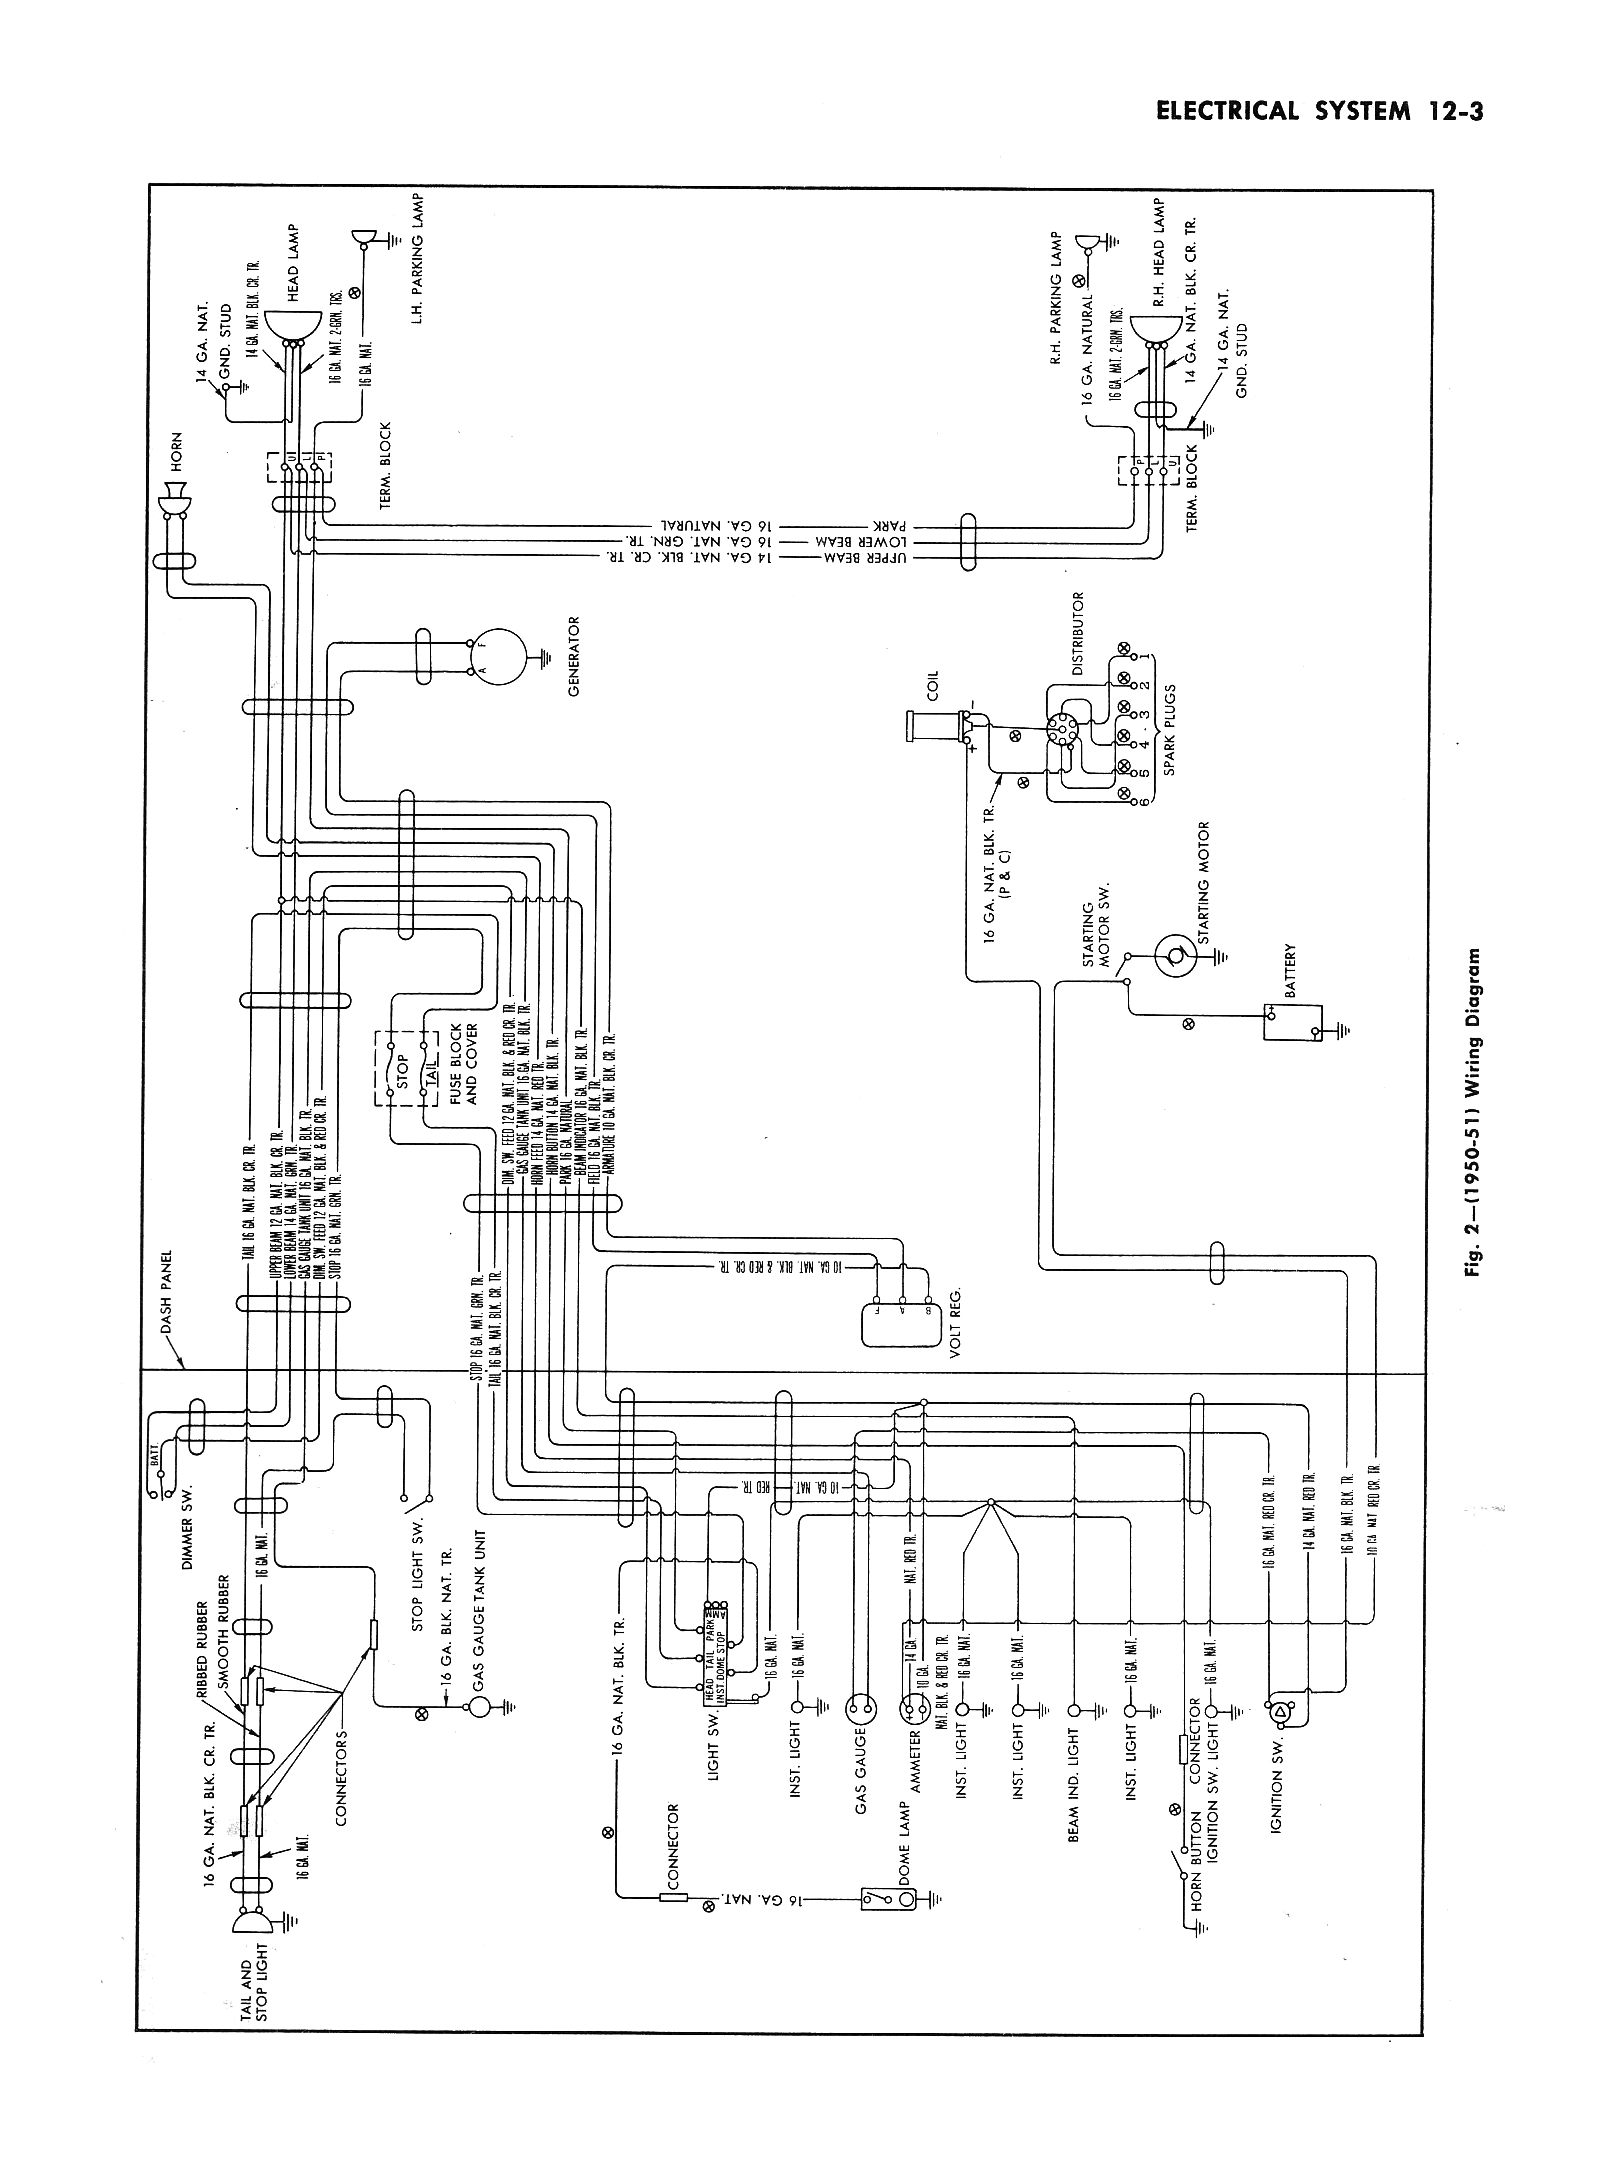 hight resolution of gm truck wiring schematic wiring diagram show 1957 chevrolet truck wiring harness chevrolet truck wiring